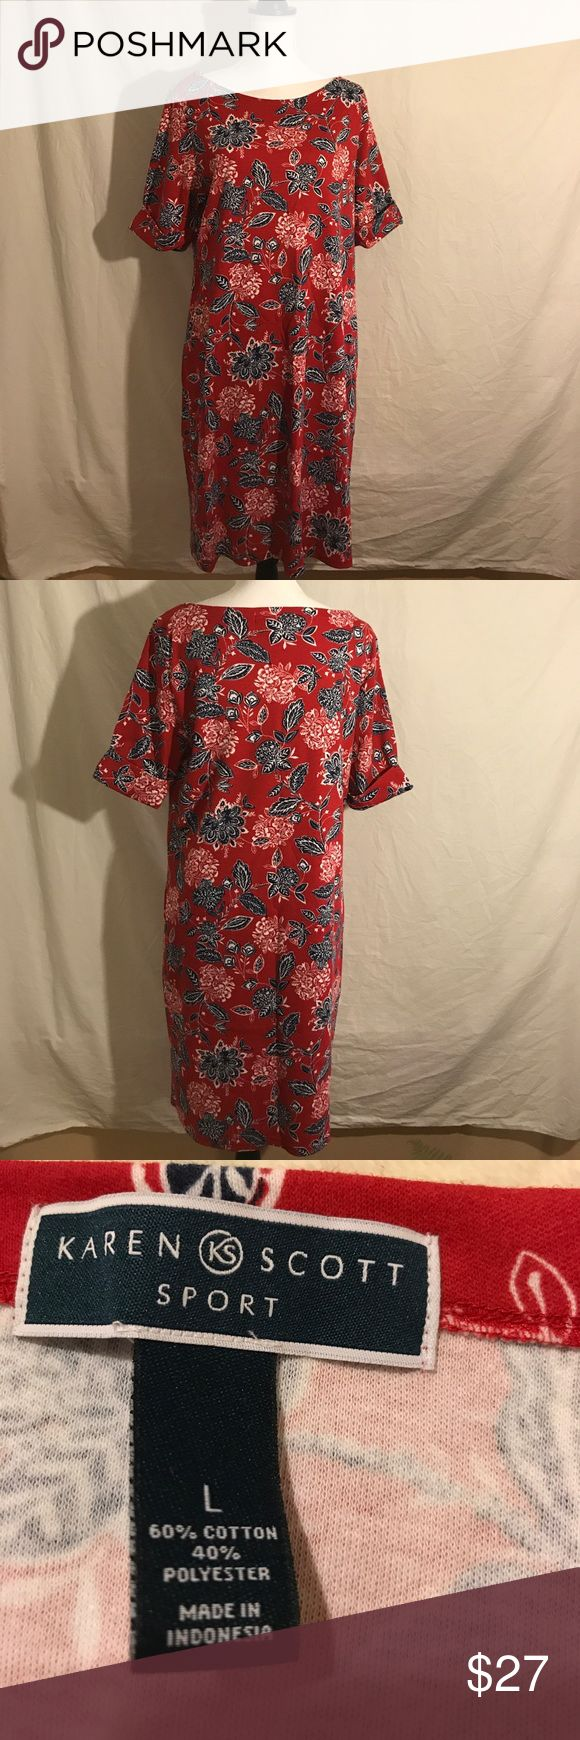 Karen Scott Sport Dress, Size Large This dress is like new.  It was only worn one time on vacation.  It is 60% cotton and 40% polyester.   Pit to pit is 21 Inches Length is 38 Inches Karen Scott Dresses